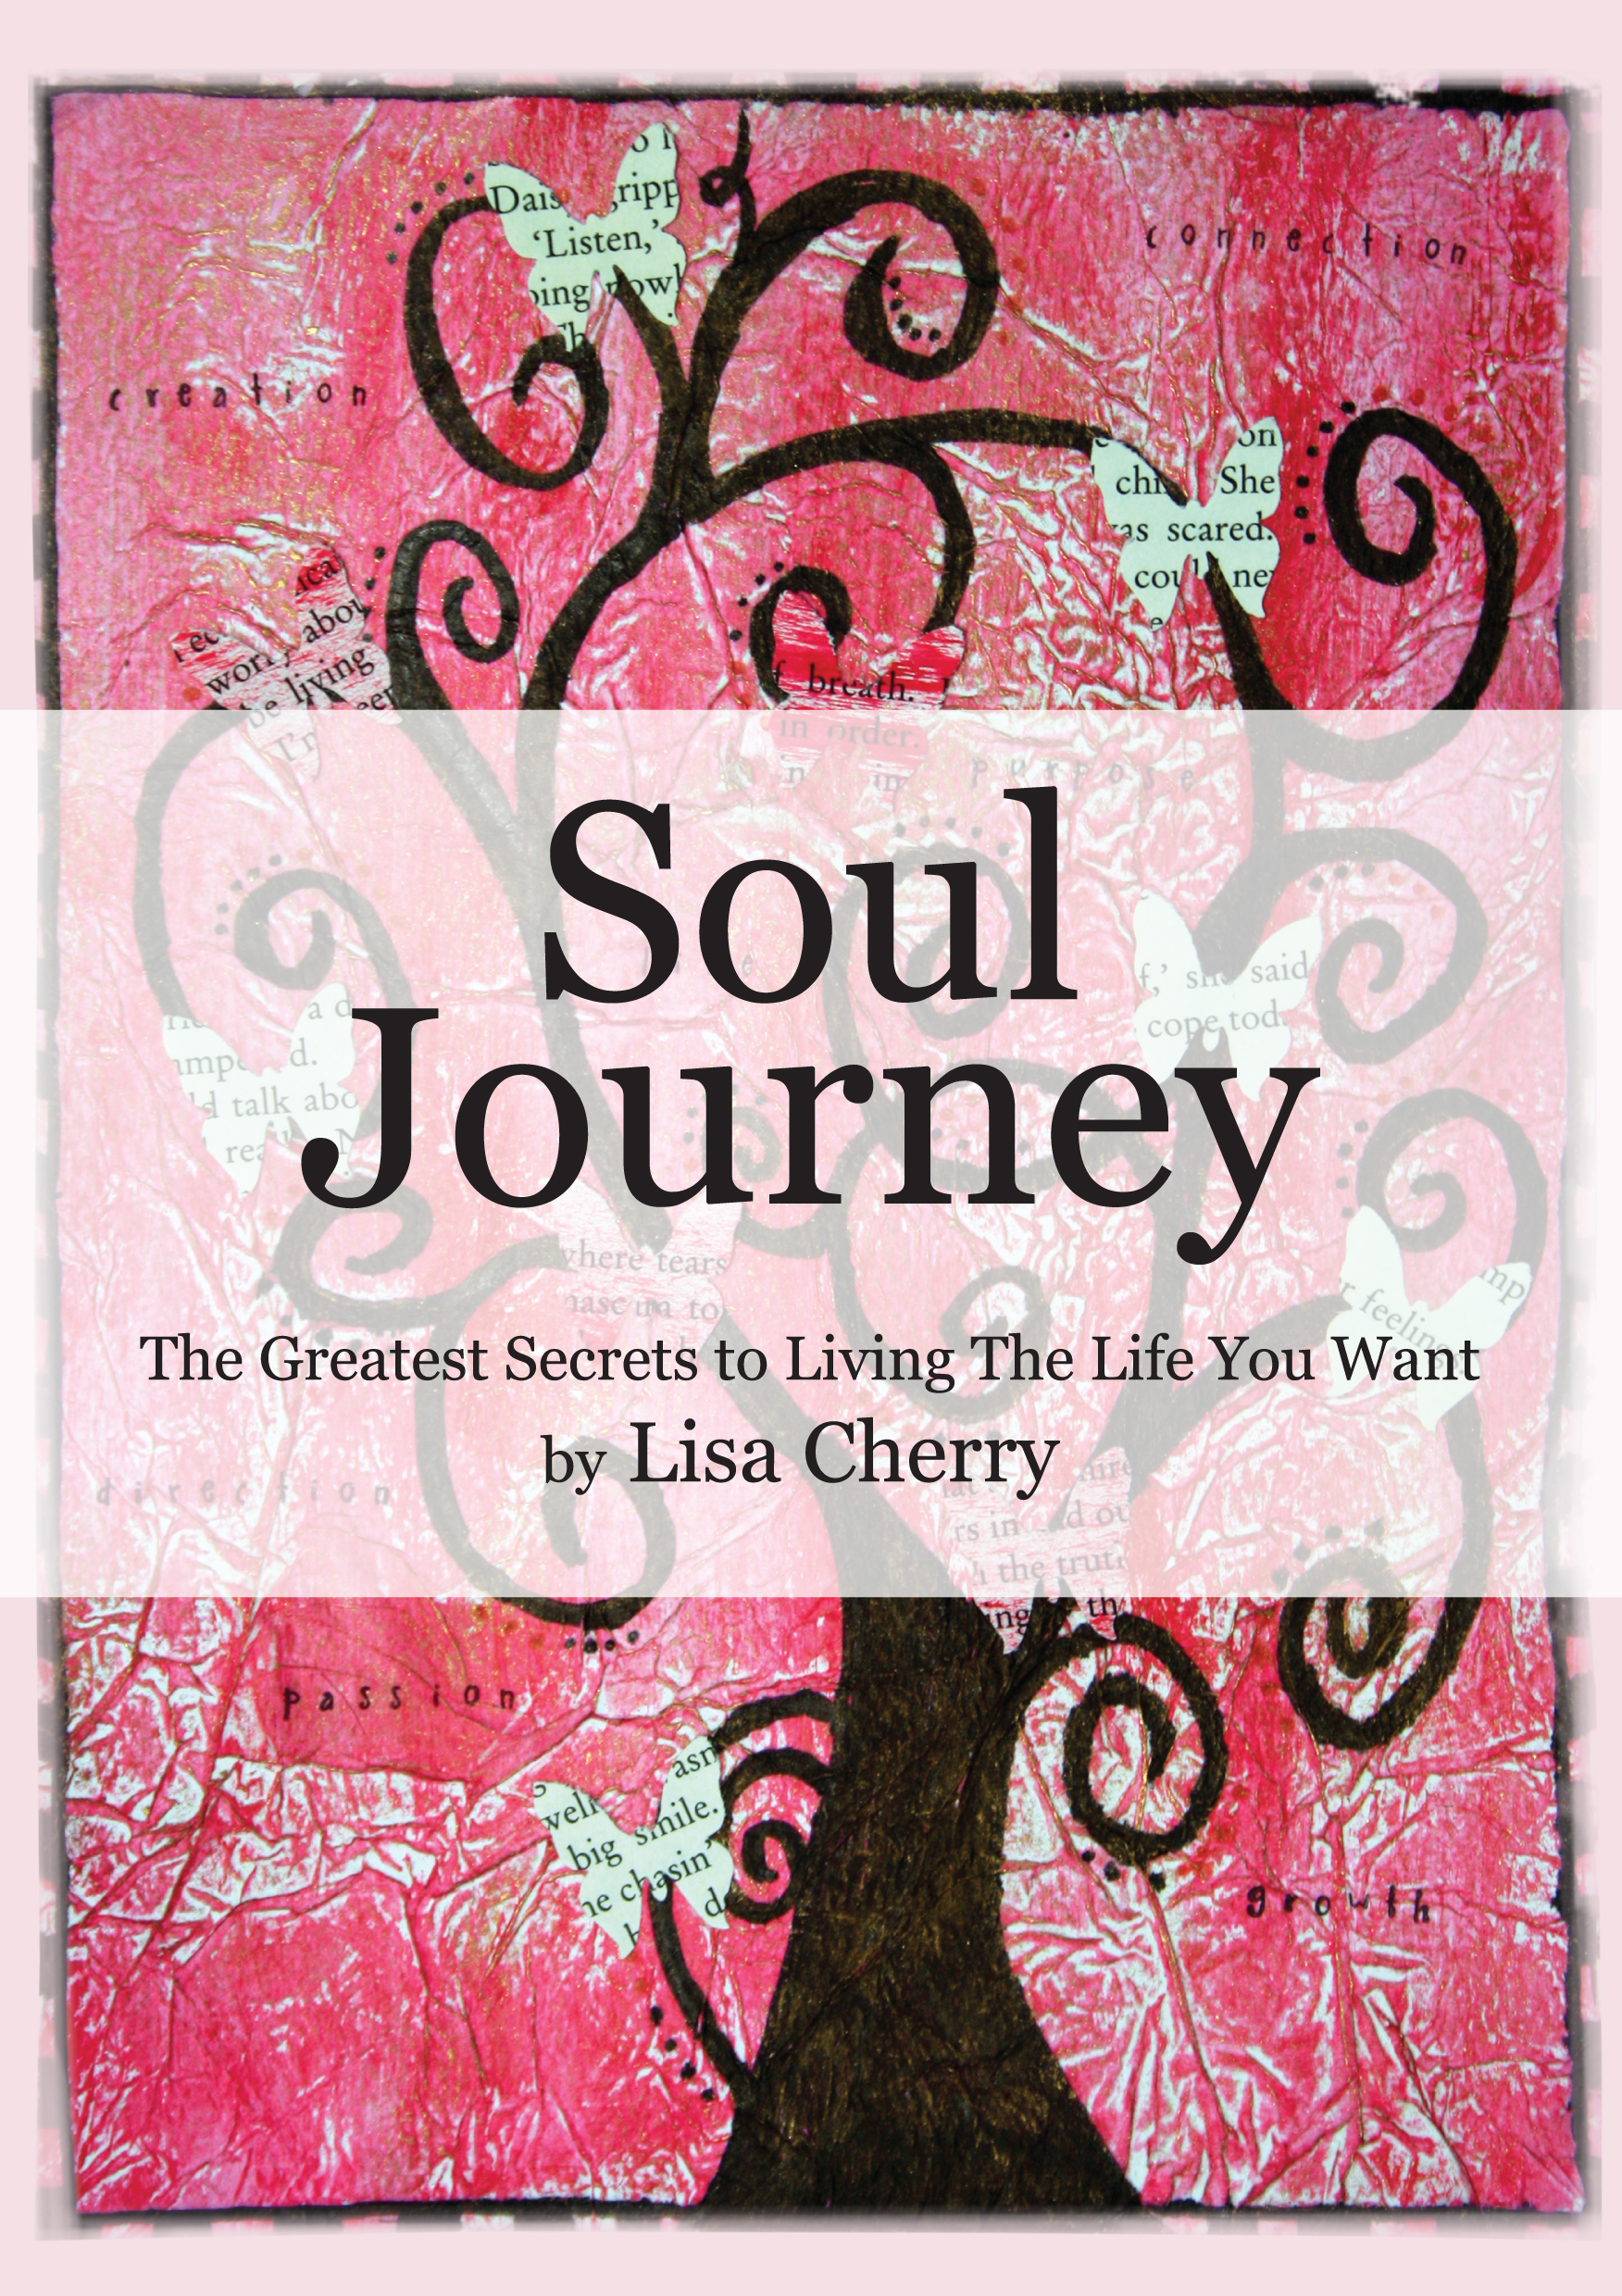 Soul Journey by Lisa Cherry